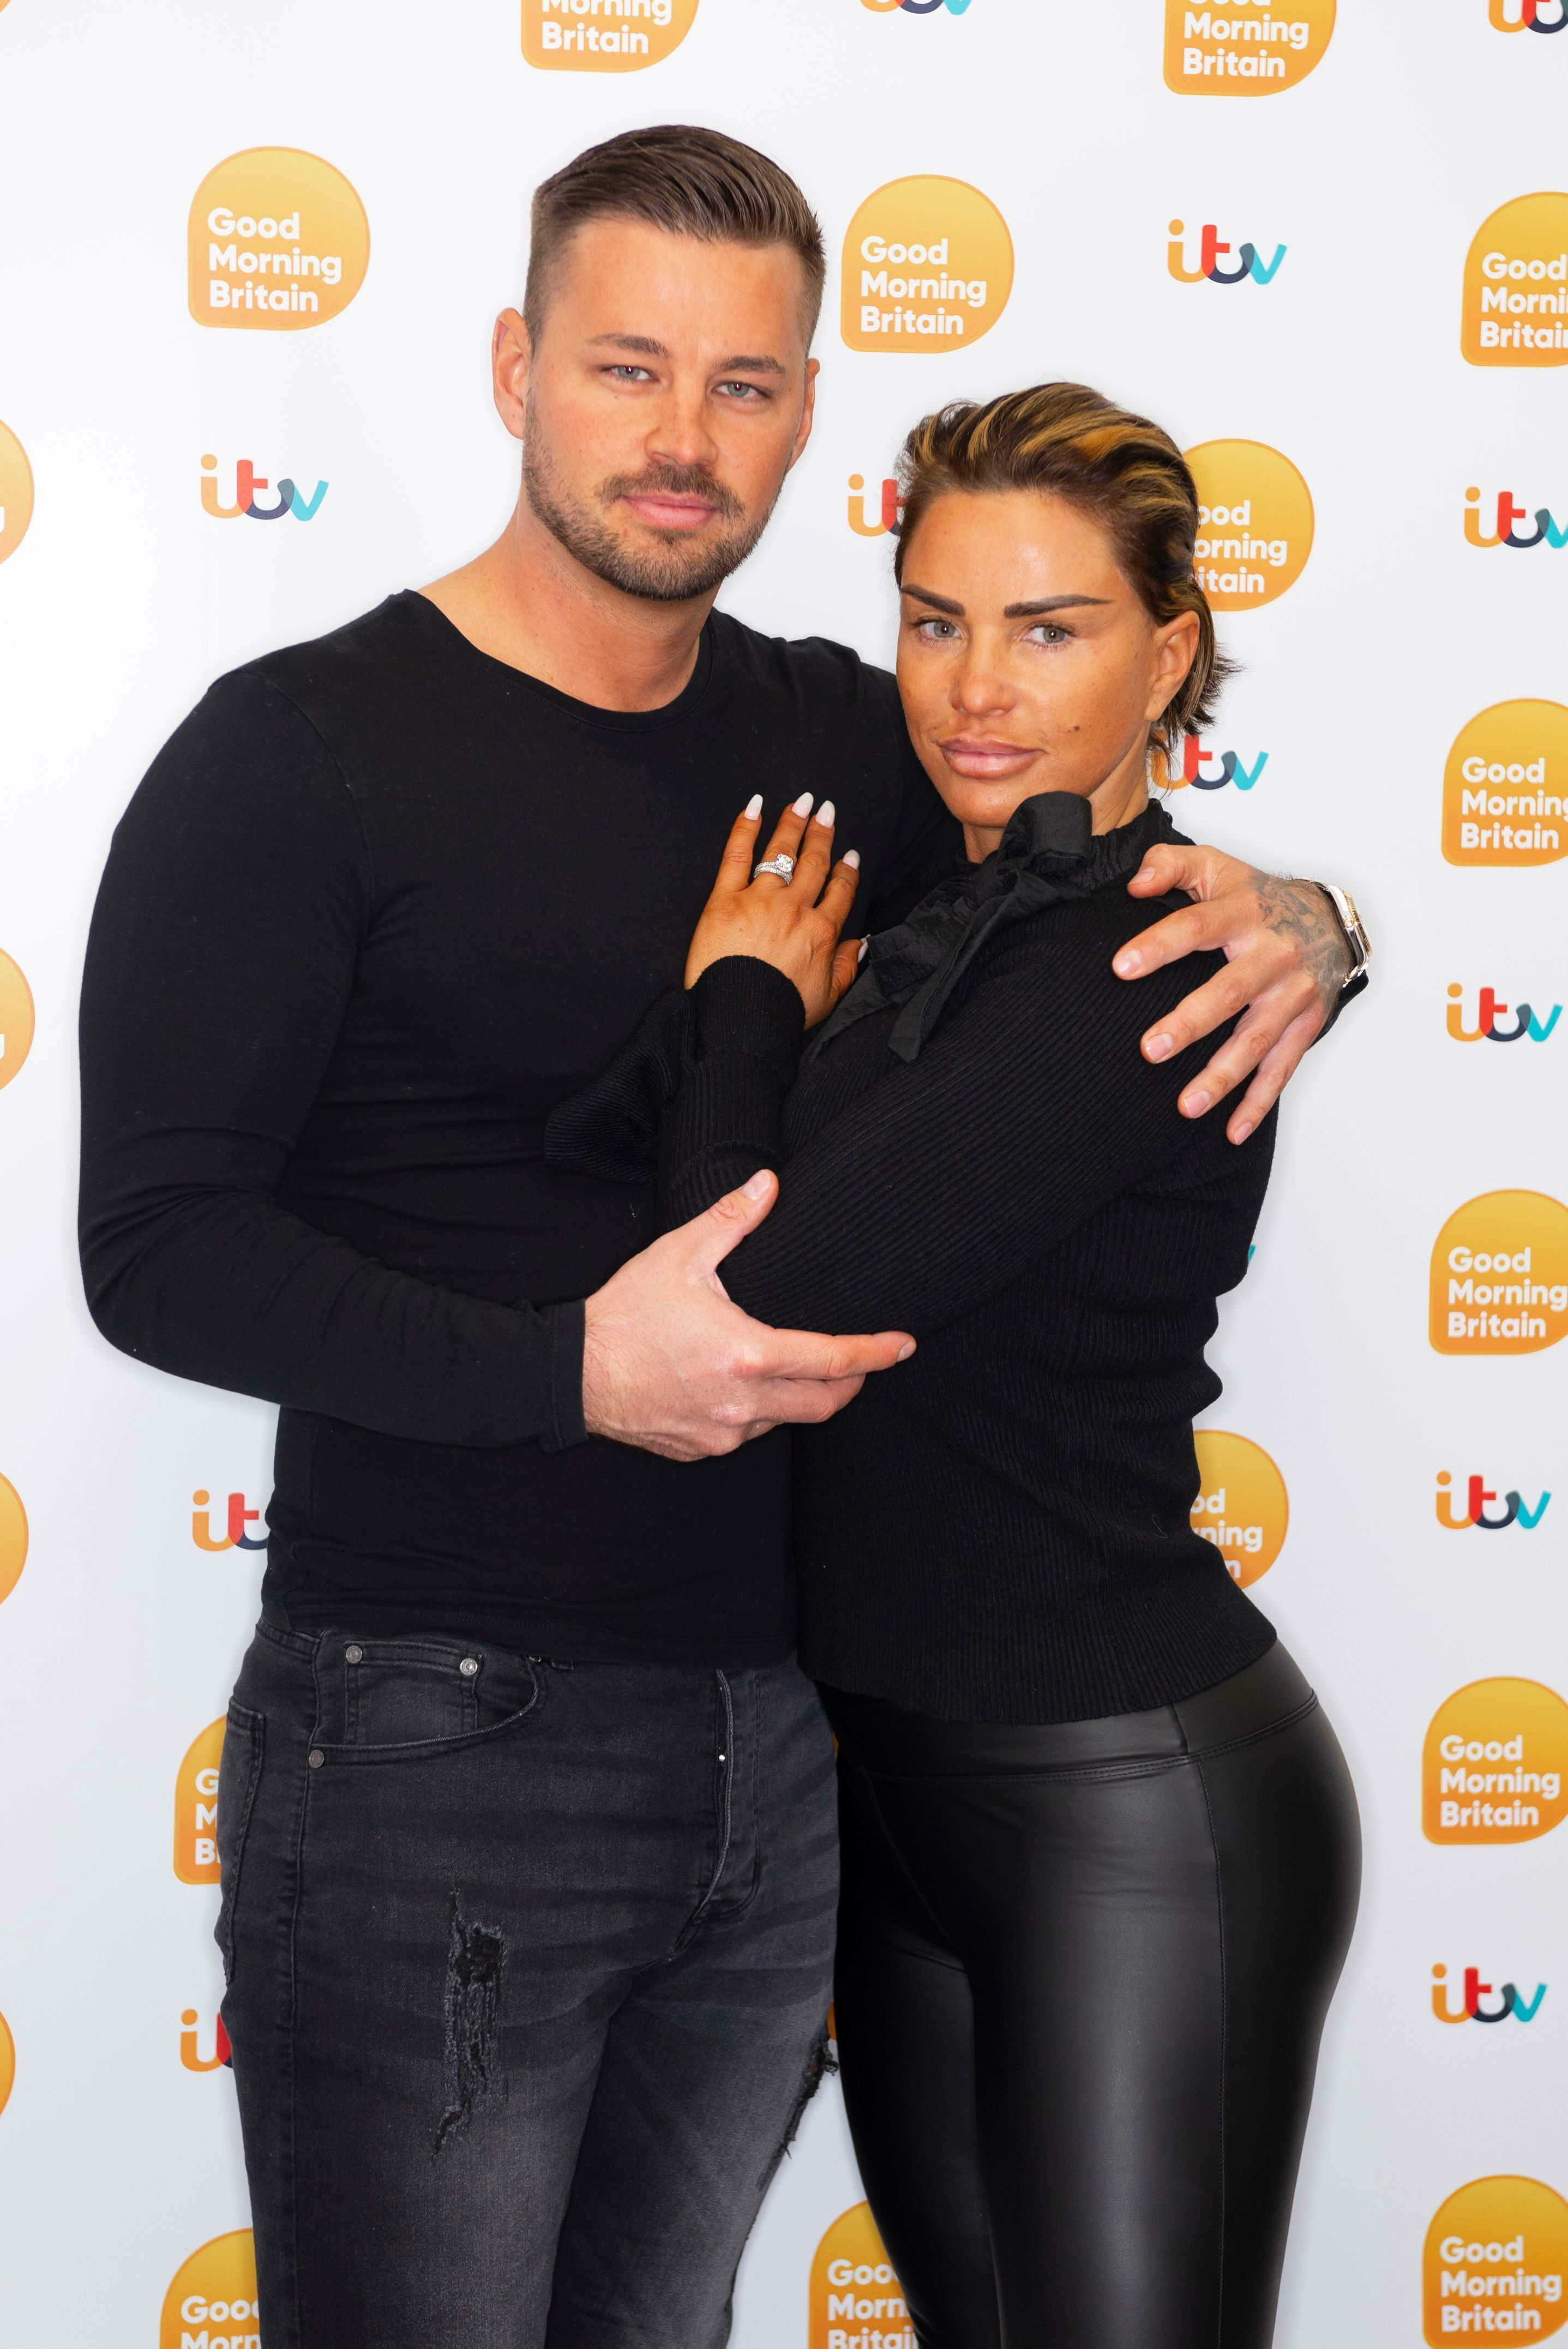 Katie Price's Fiancé Carl Woods Gets A Third Tattoo Of Her Face... And It's Huge